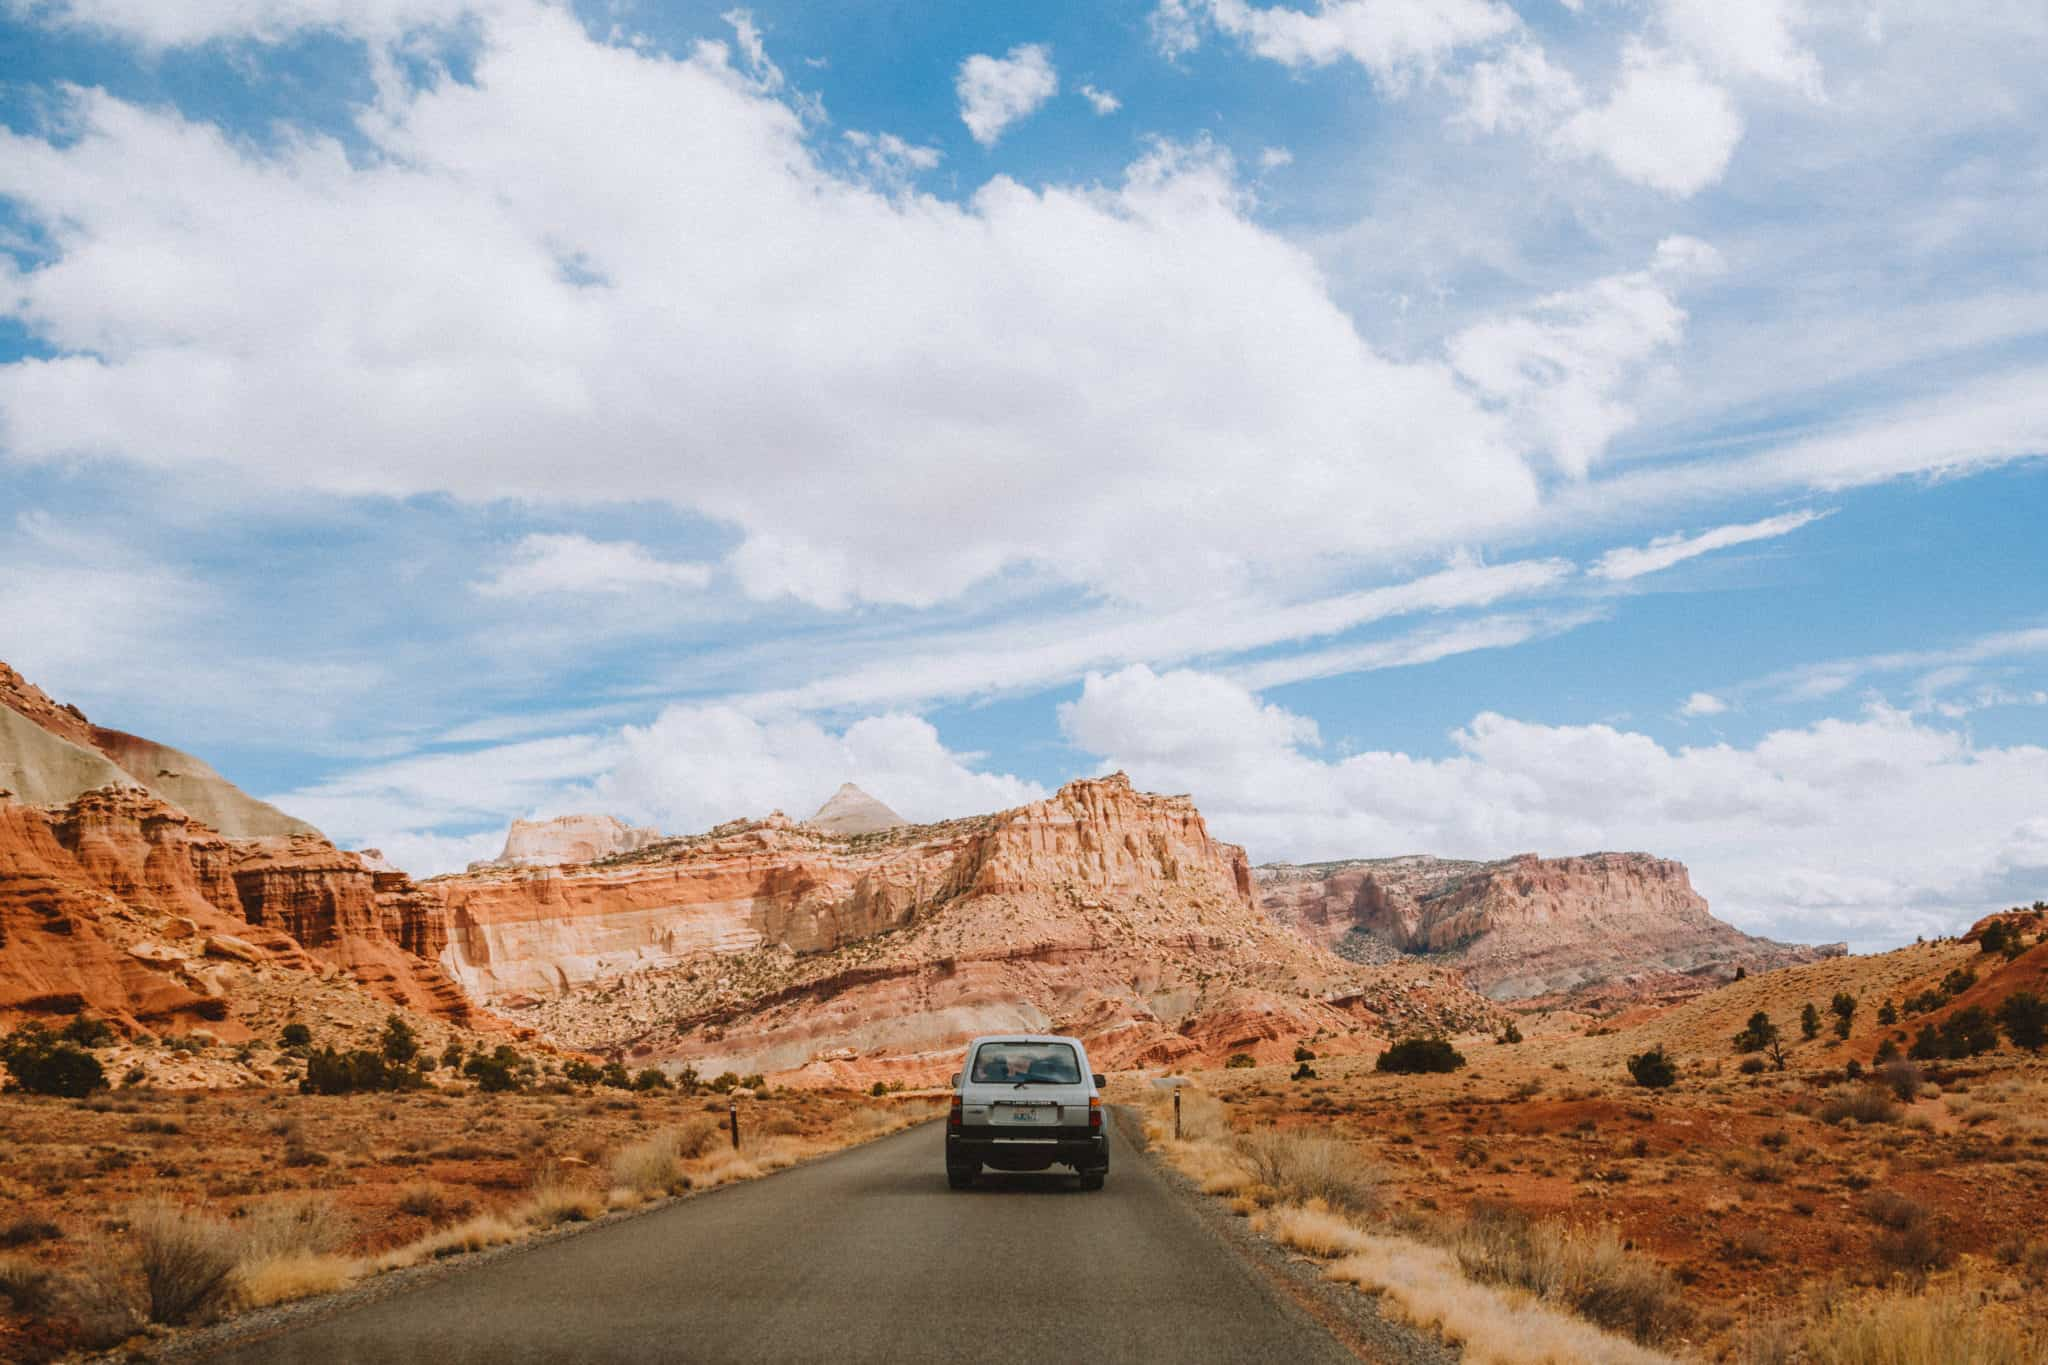 Utah National Parks - Capitol Reef